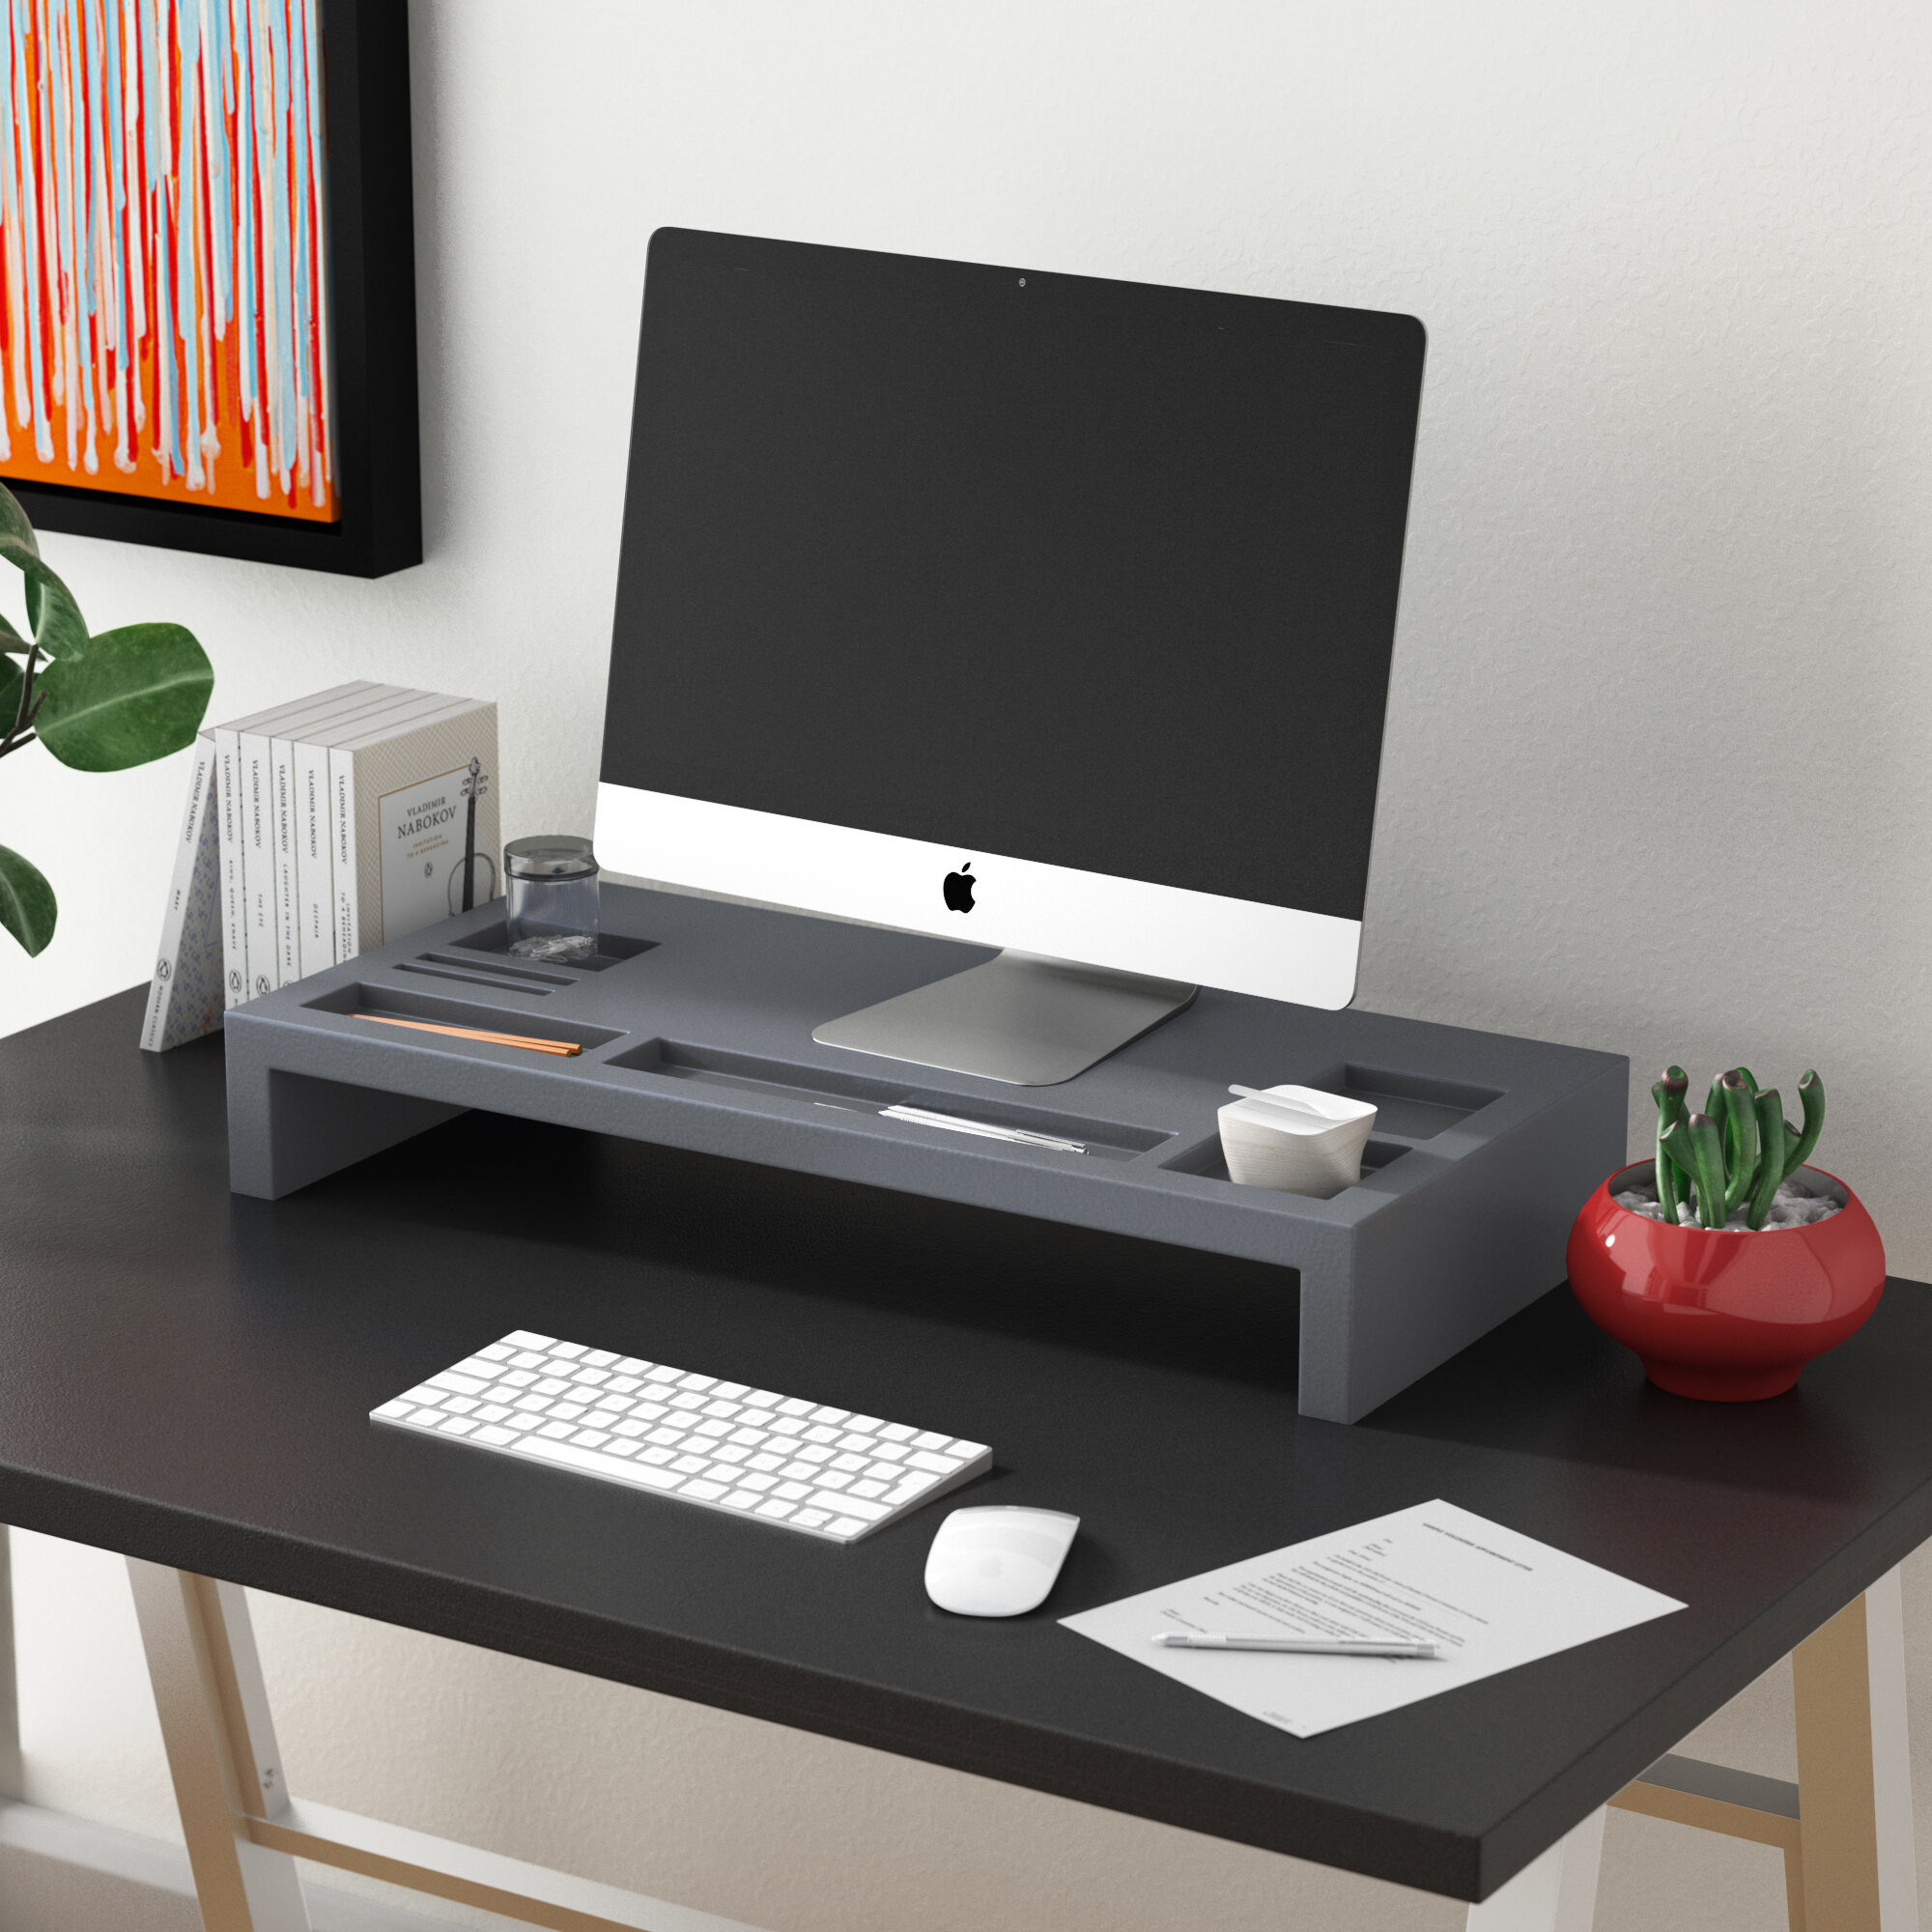 ergotron products orig for desk adjustable nl details product lx mount height scrnmod arm monitor stand standing